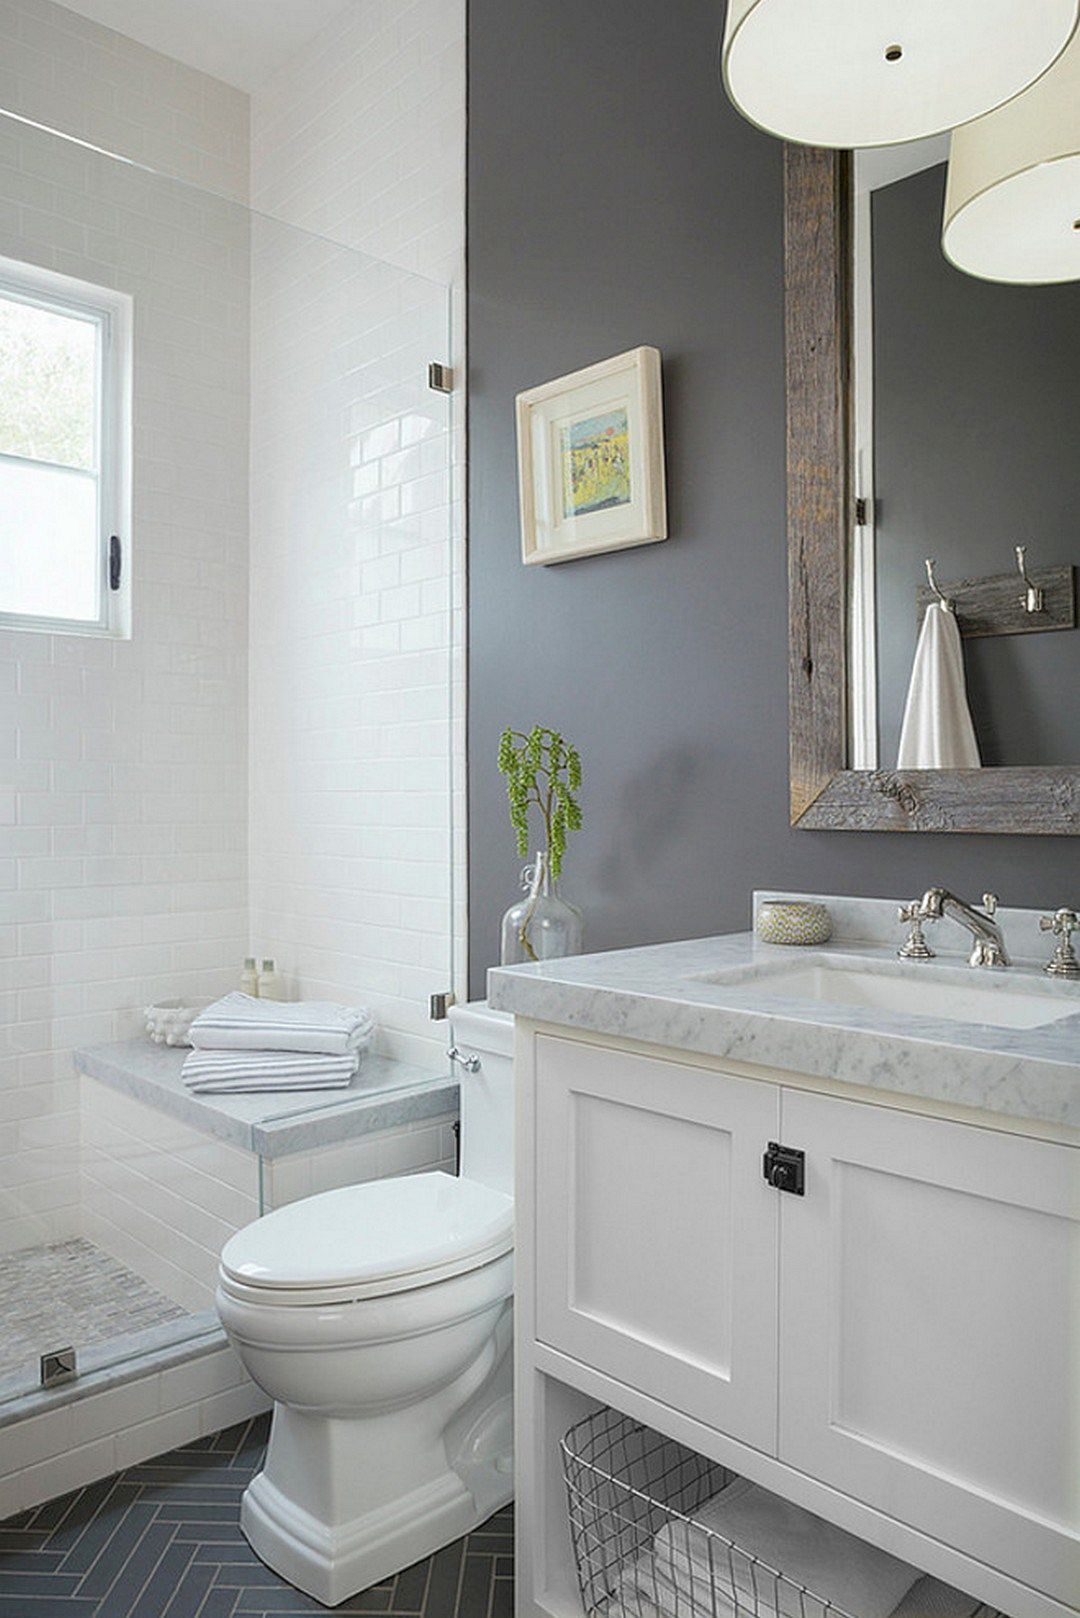 Best Small Bathroom Remodel: 111 Design Ideas https://www ...